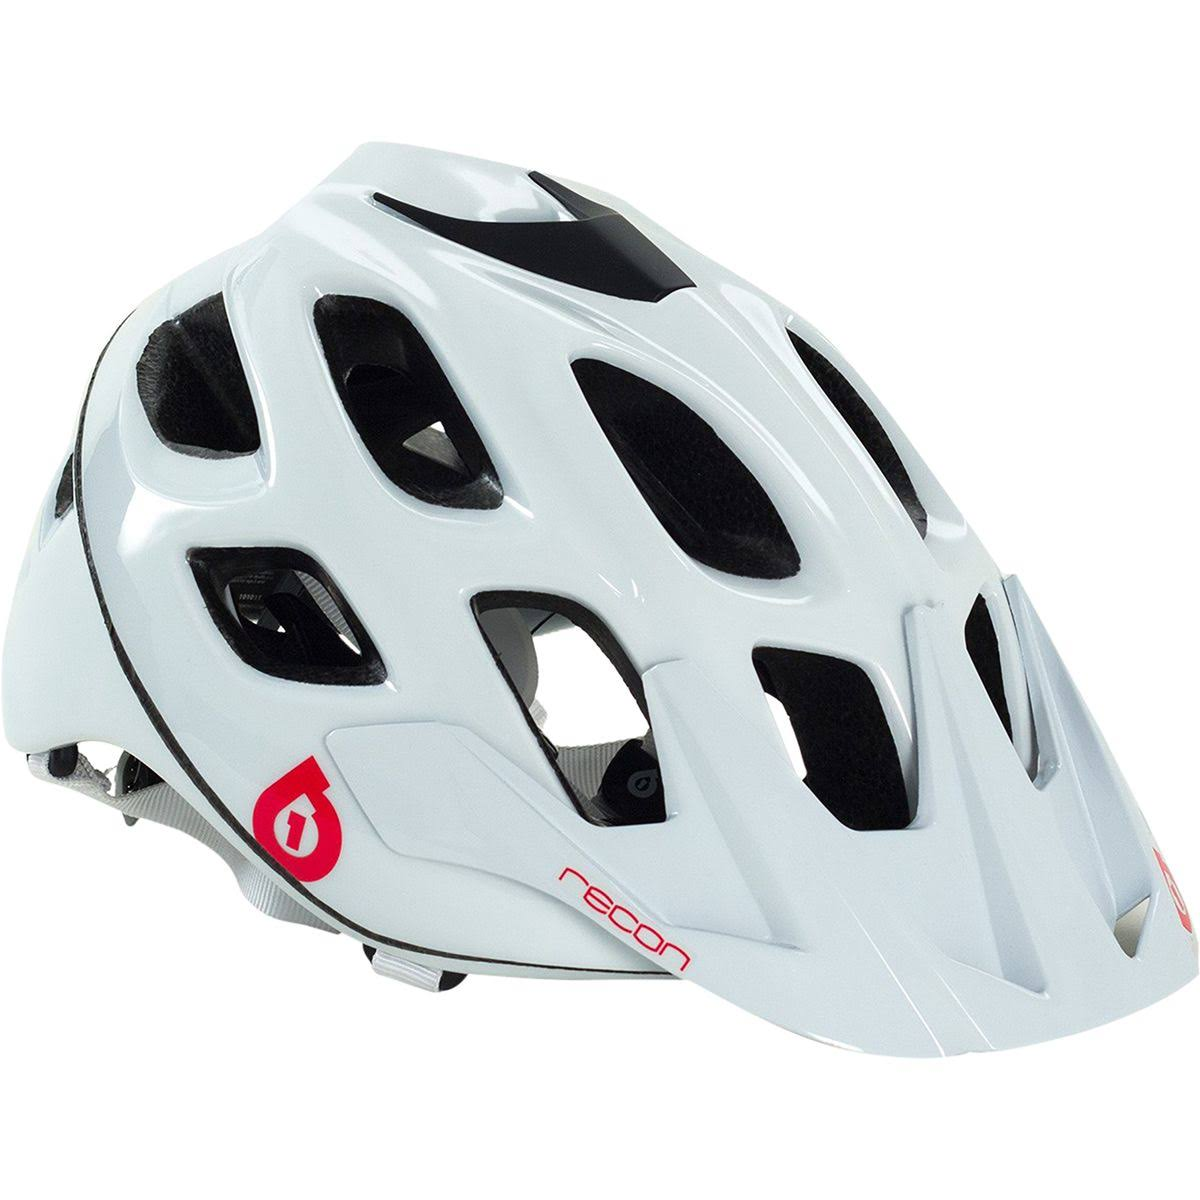 SixSixOne Recon Scout Helmet White/Red - L/XL